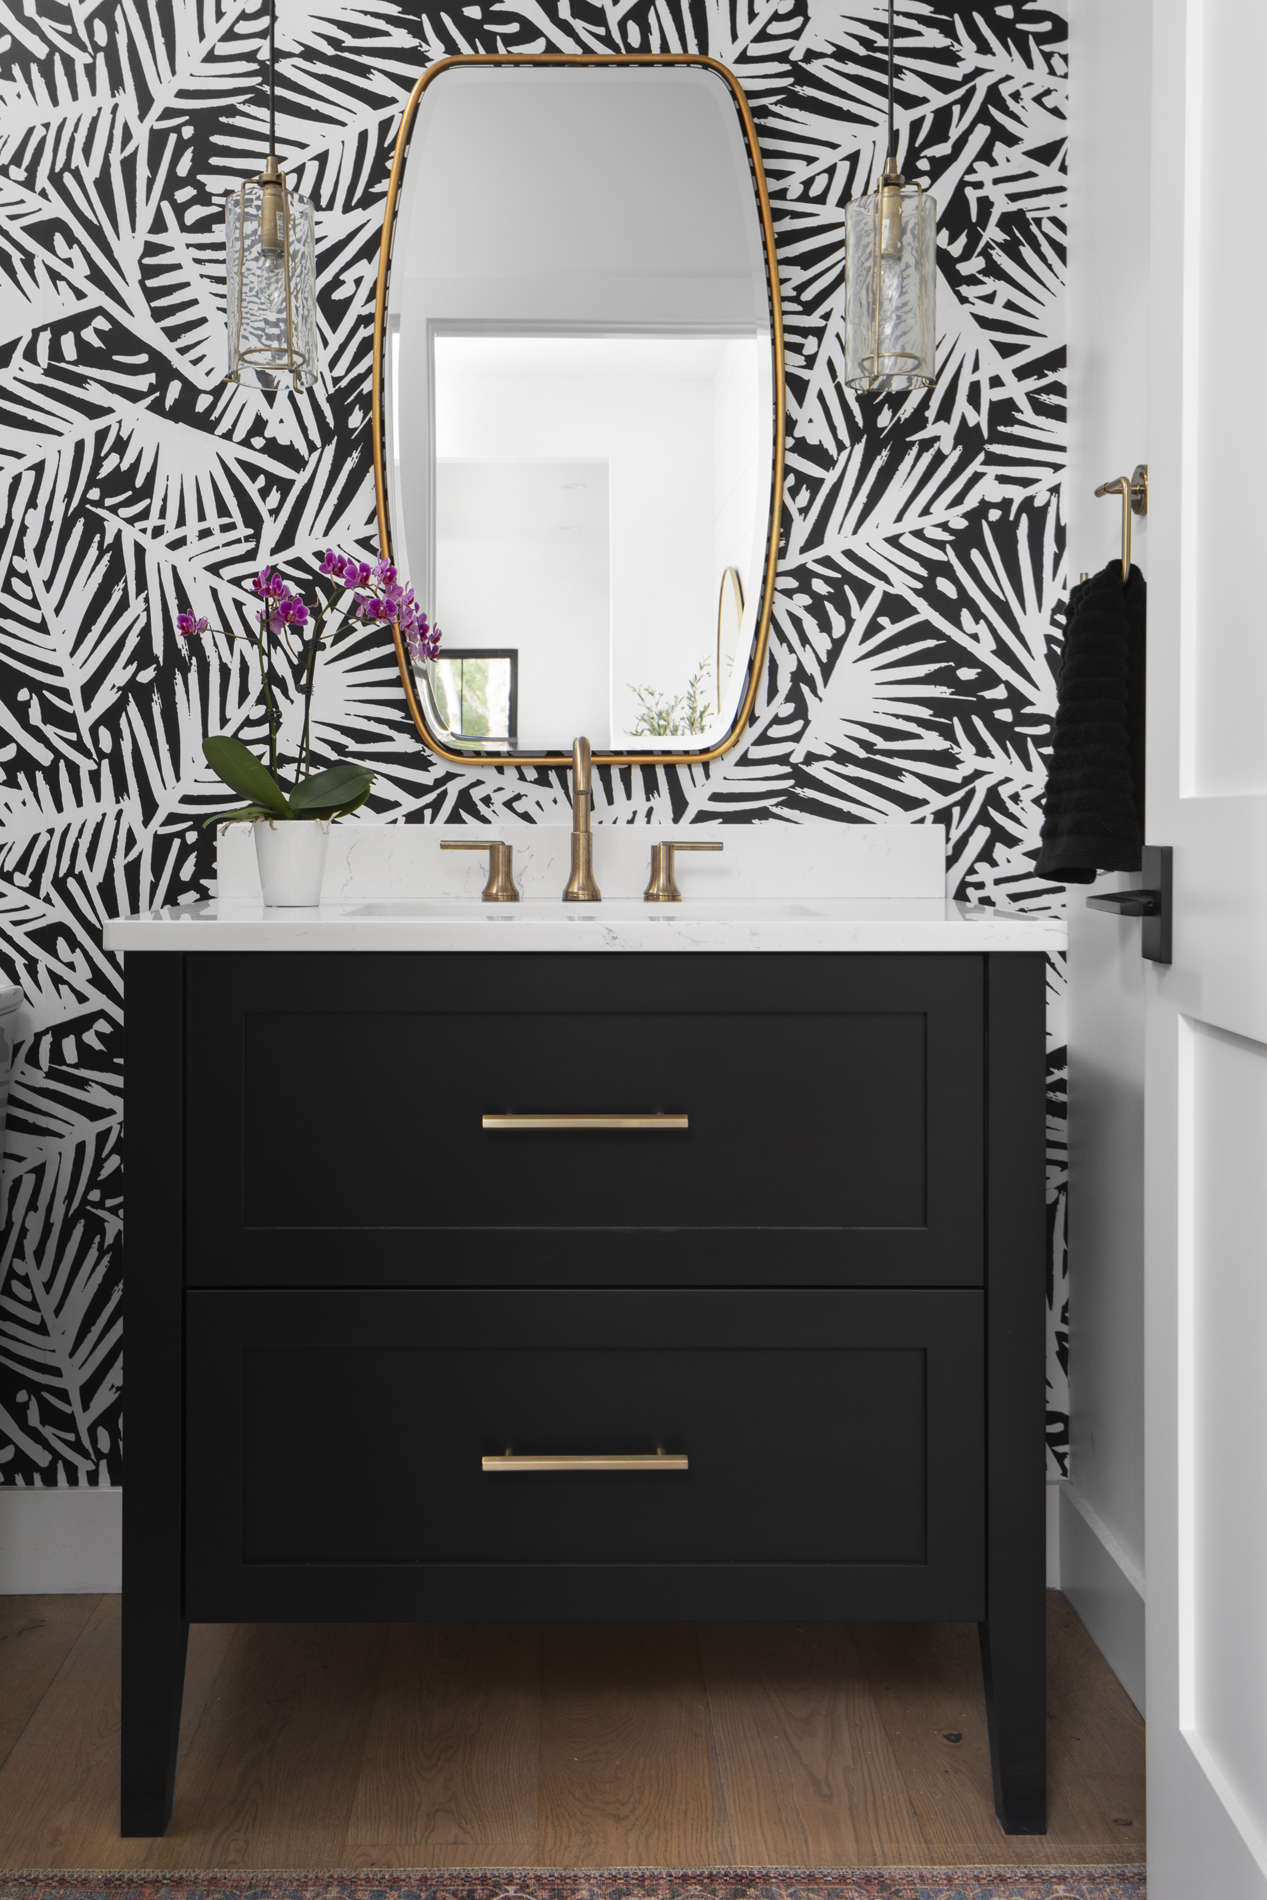 Black And White Bathroom Bold Wallpaper Brushed Gold Accent Black Cabinet Guest Bath Lakeside Development